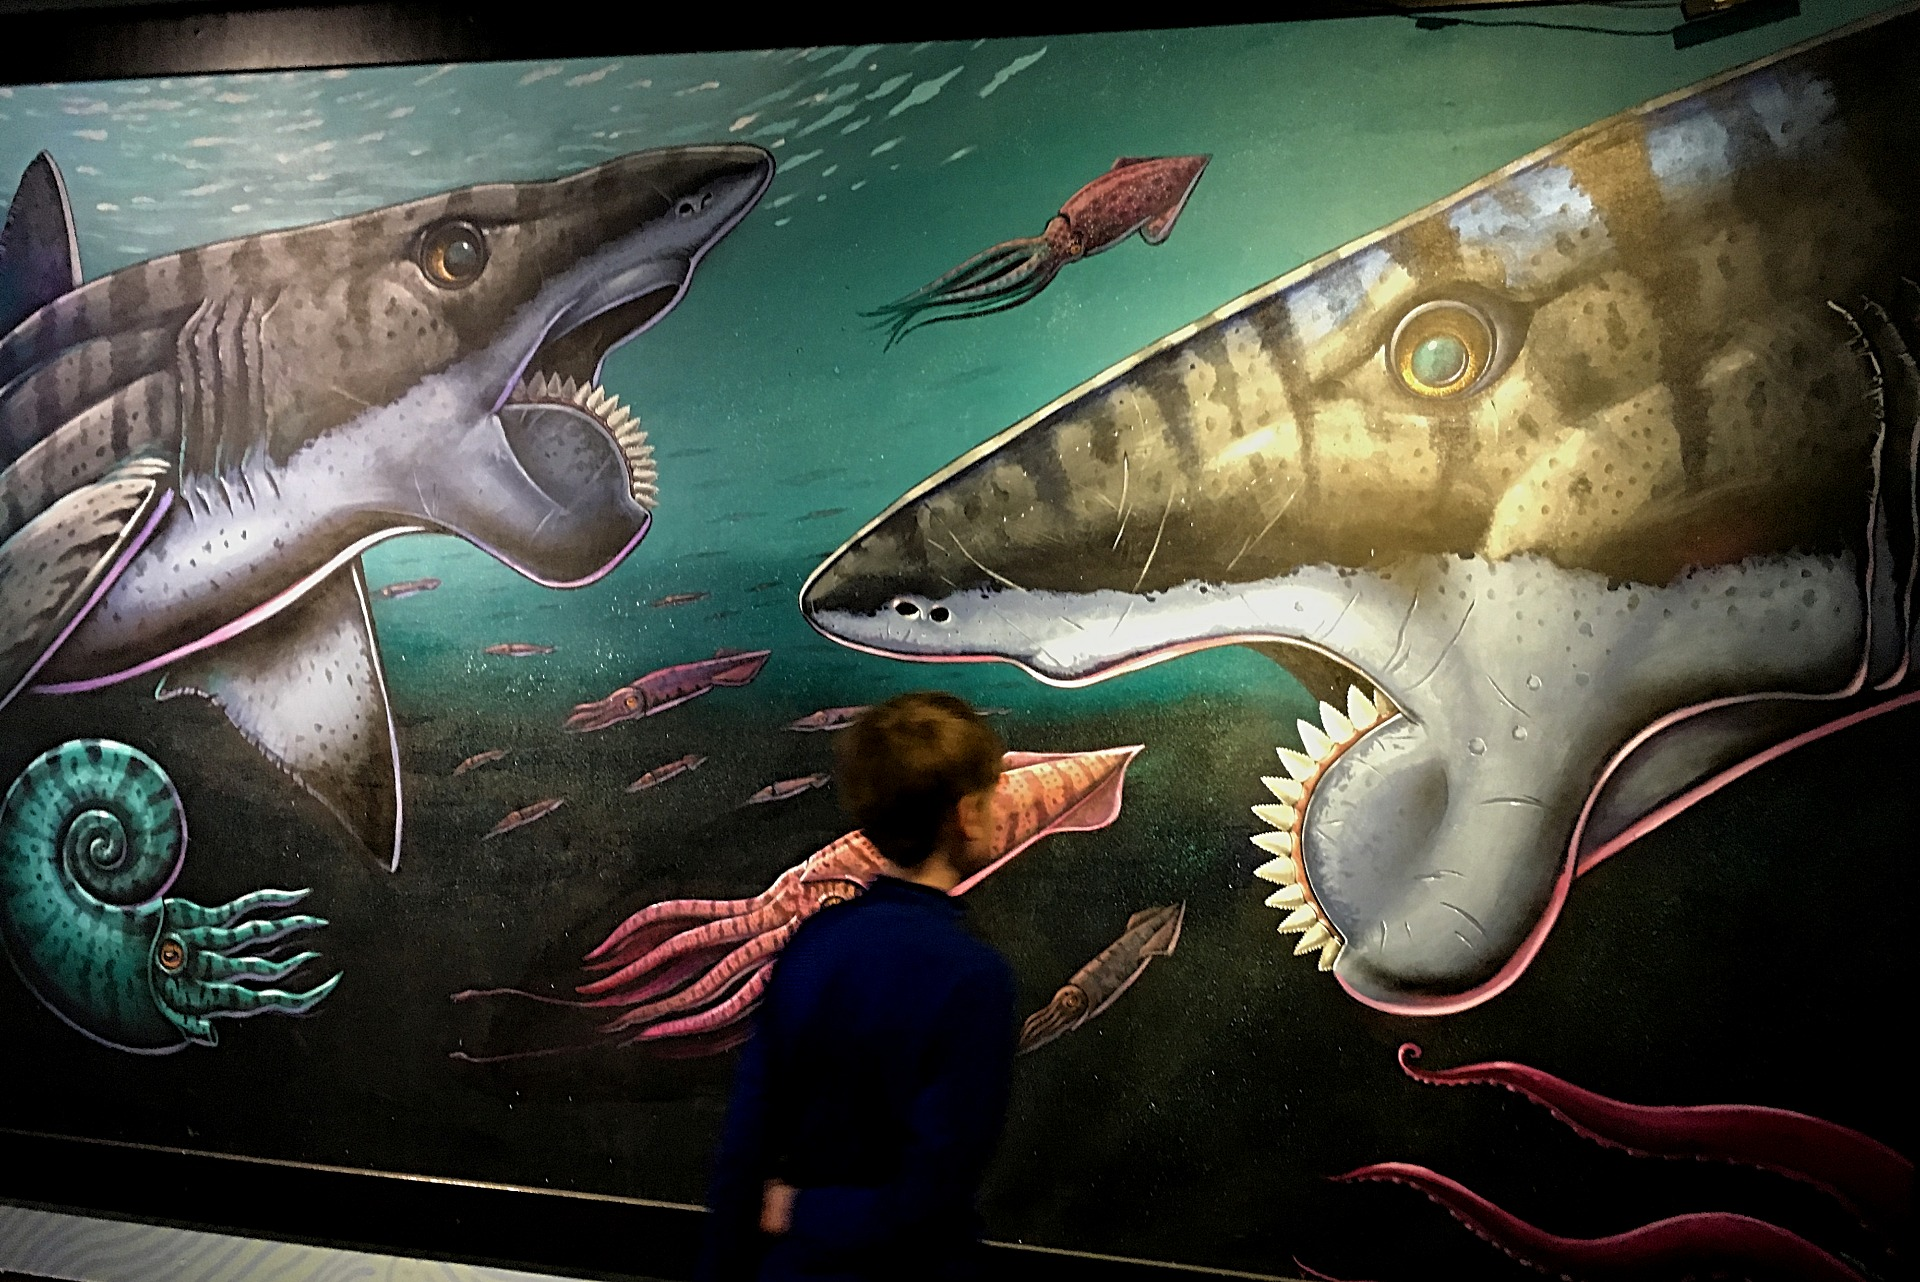 Buzzsaw shark mural at the Idaho Museum of Natural History